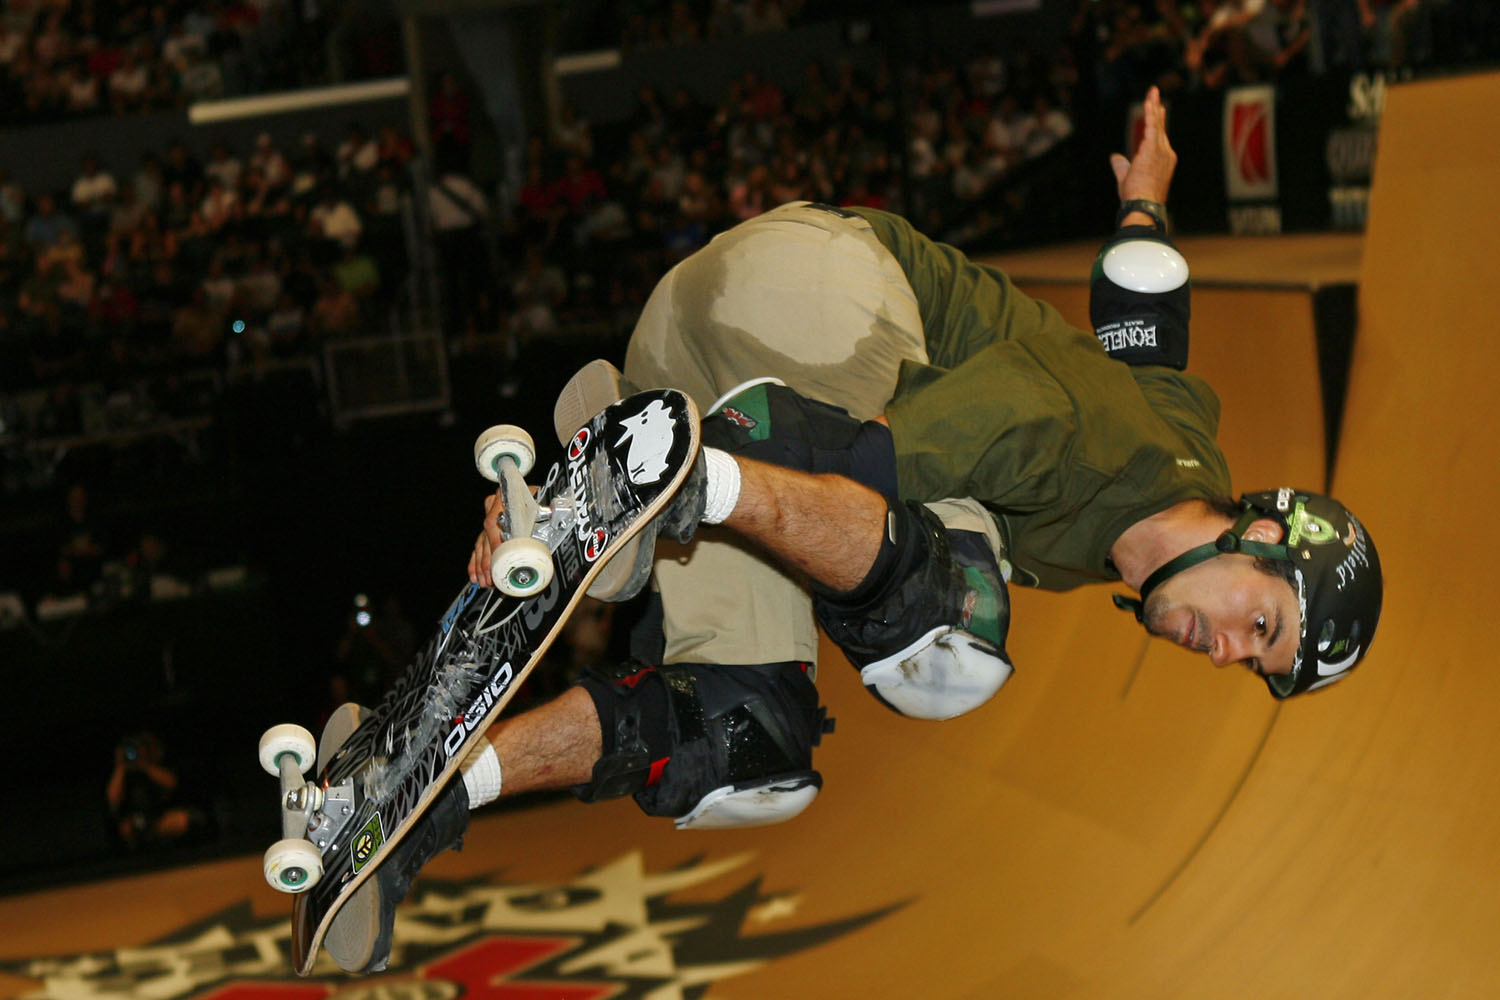 Men's Skateboard Vert silver medalist Bob Burnquist in action during X Games 12.